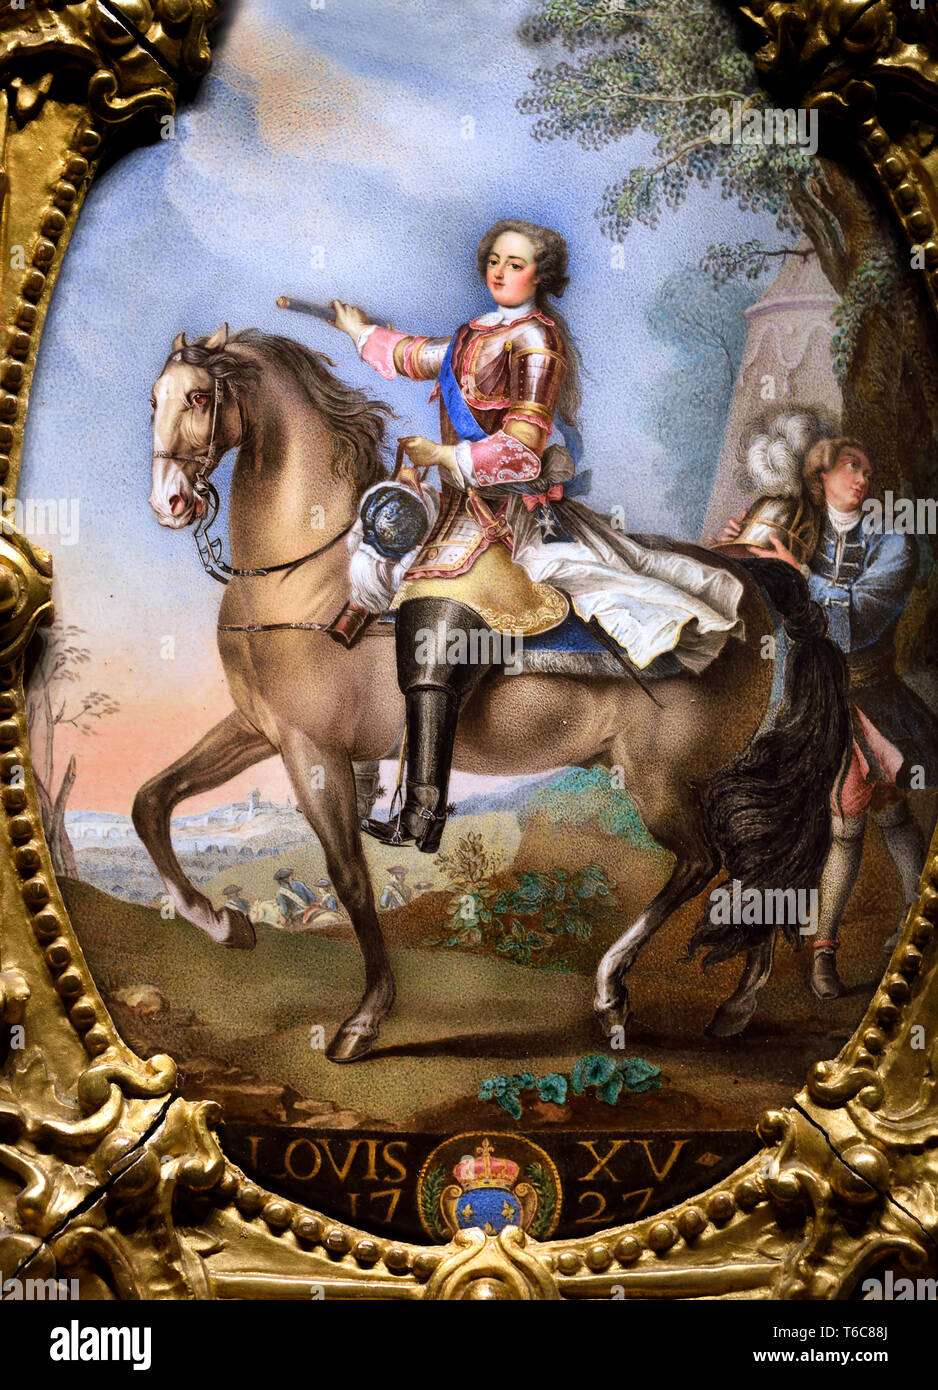 King Louis XV  1710 – 1774, known as Louis the Beloved, monarch of the House of Bourbon, ruled as King of France from 1 September 1715 until his death in 1774. France, French,( Enamel painted on copper, carved and gilded wooden frame ) after a portrait Charles André van Loo - Carle van Loo 1705 -1765, - Stock Image